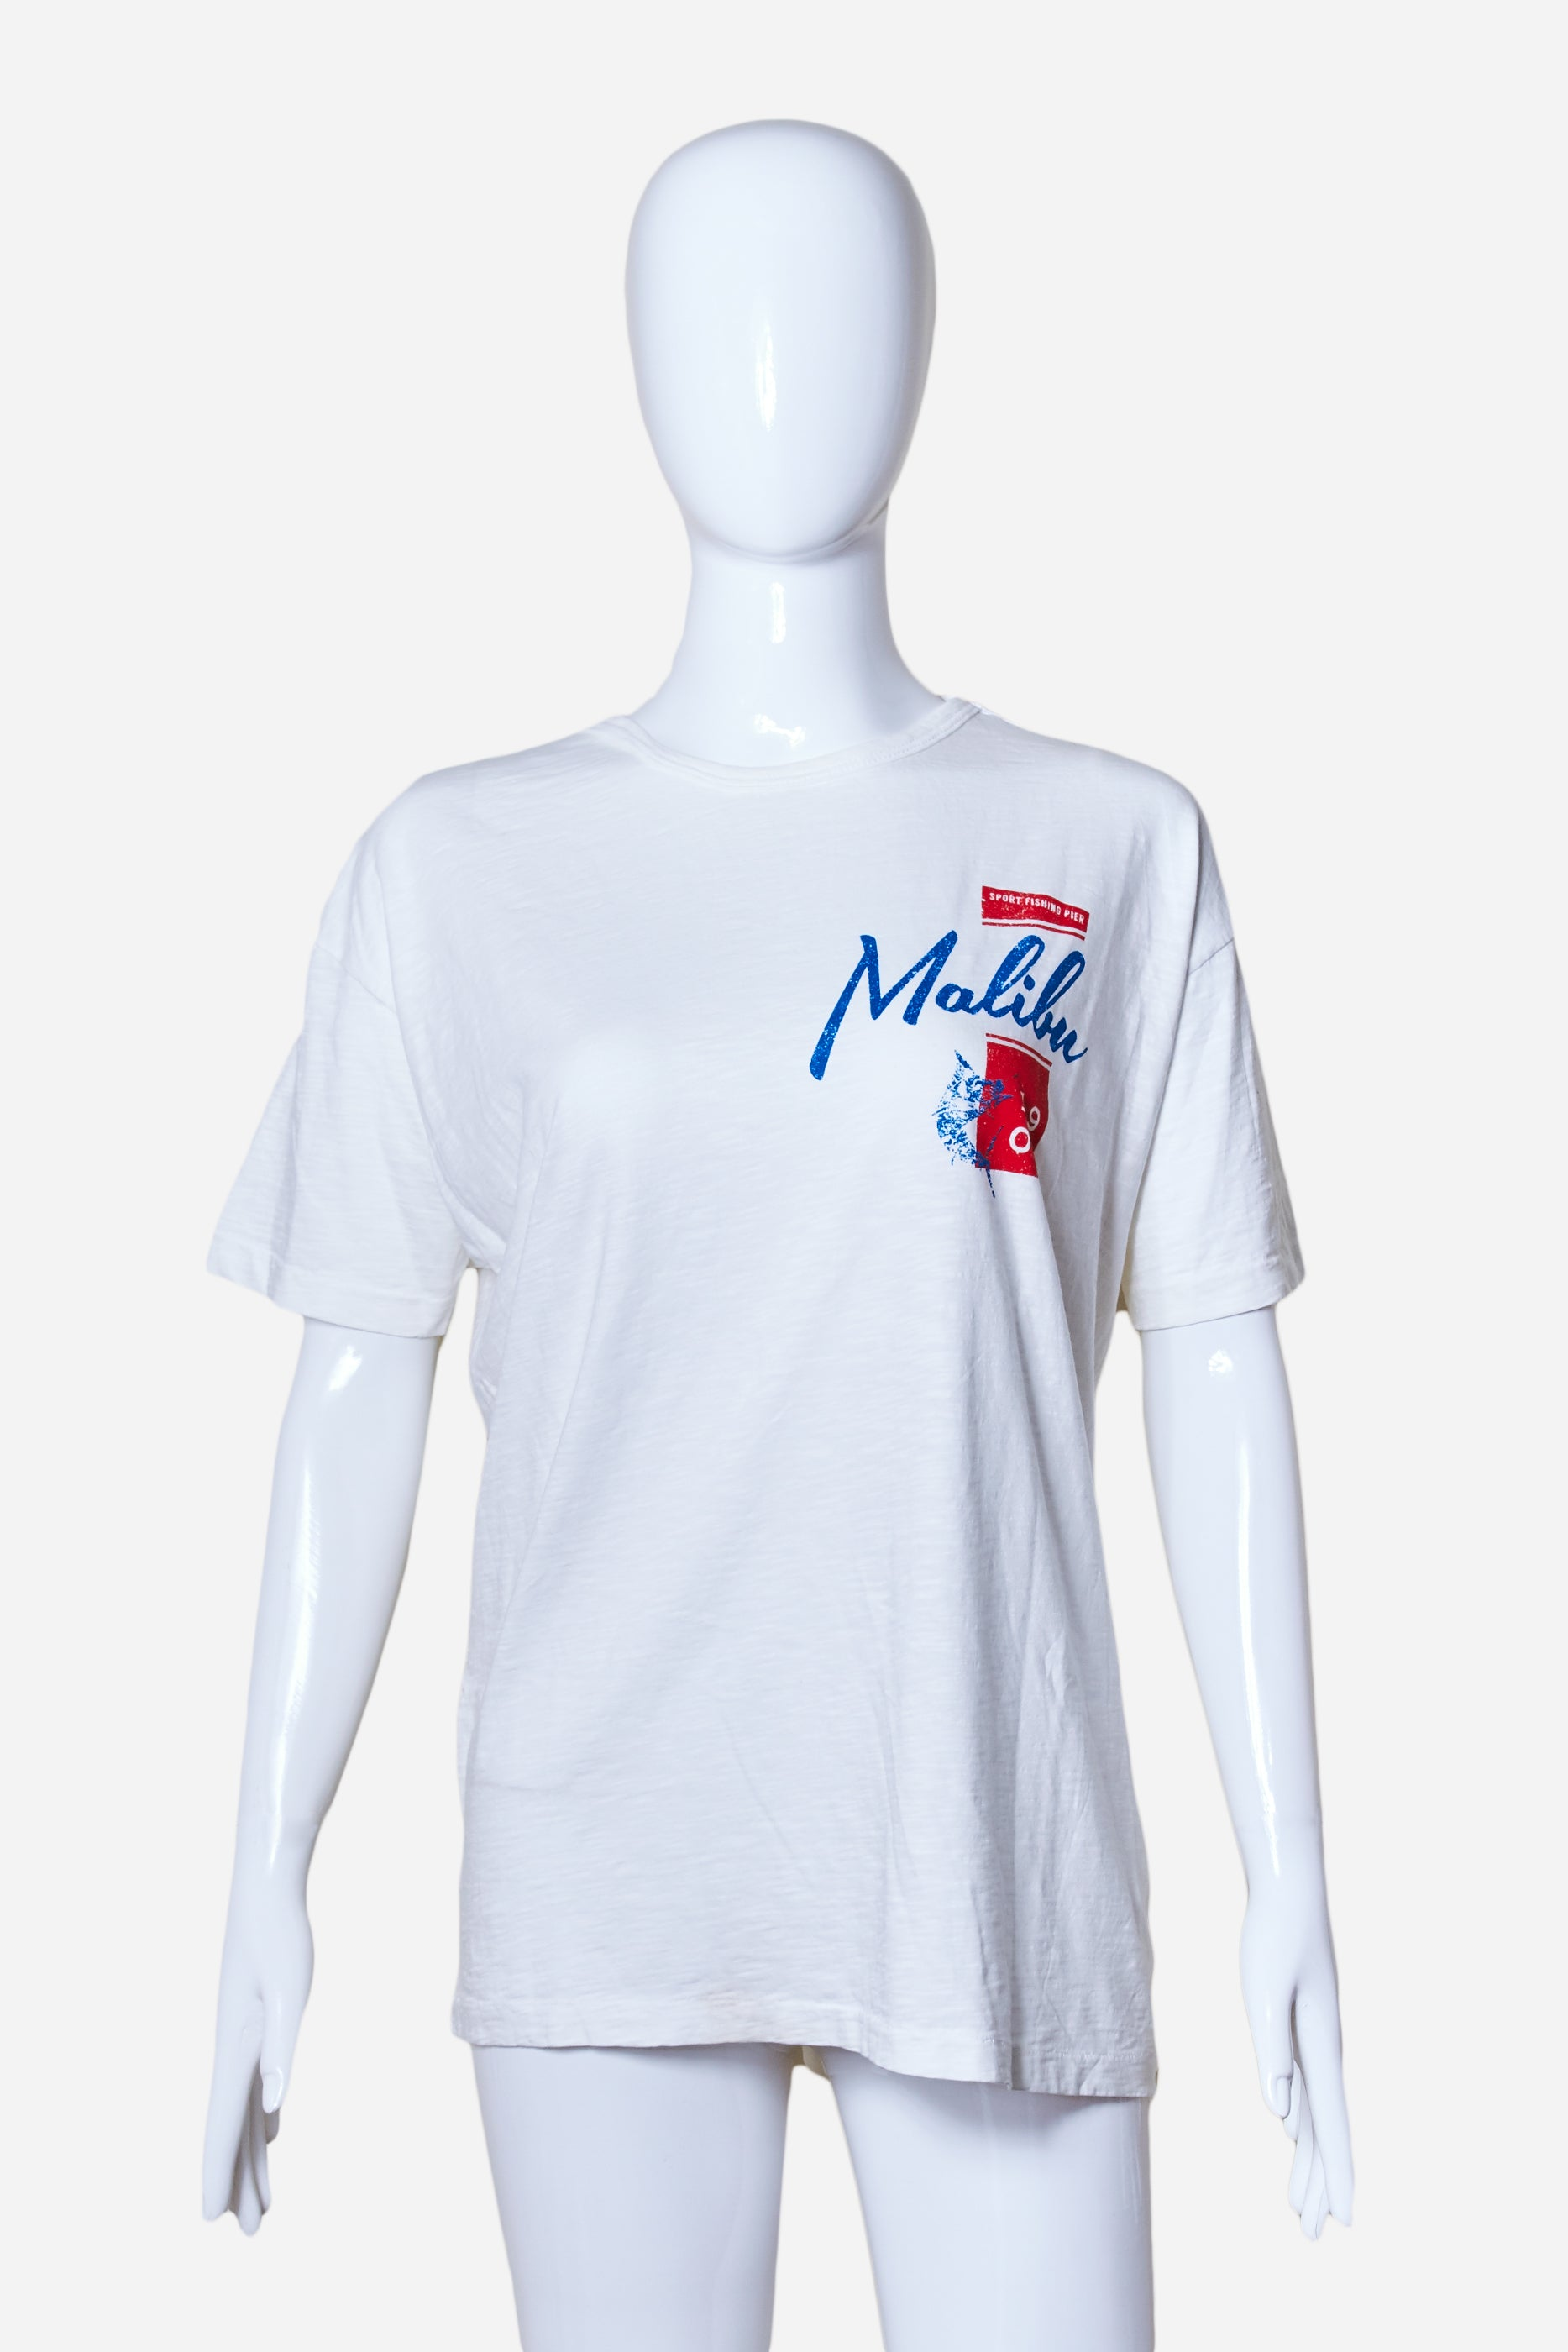 One Gun Malibu Marlin T-Shirt